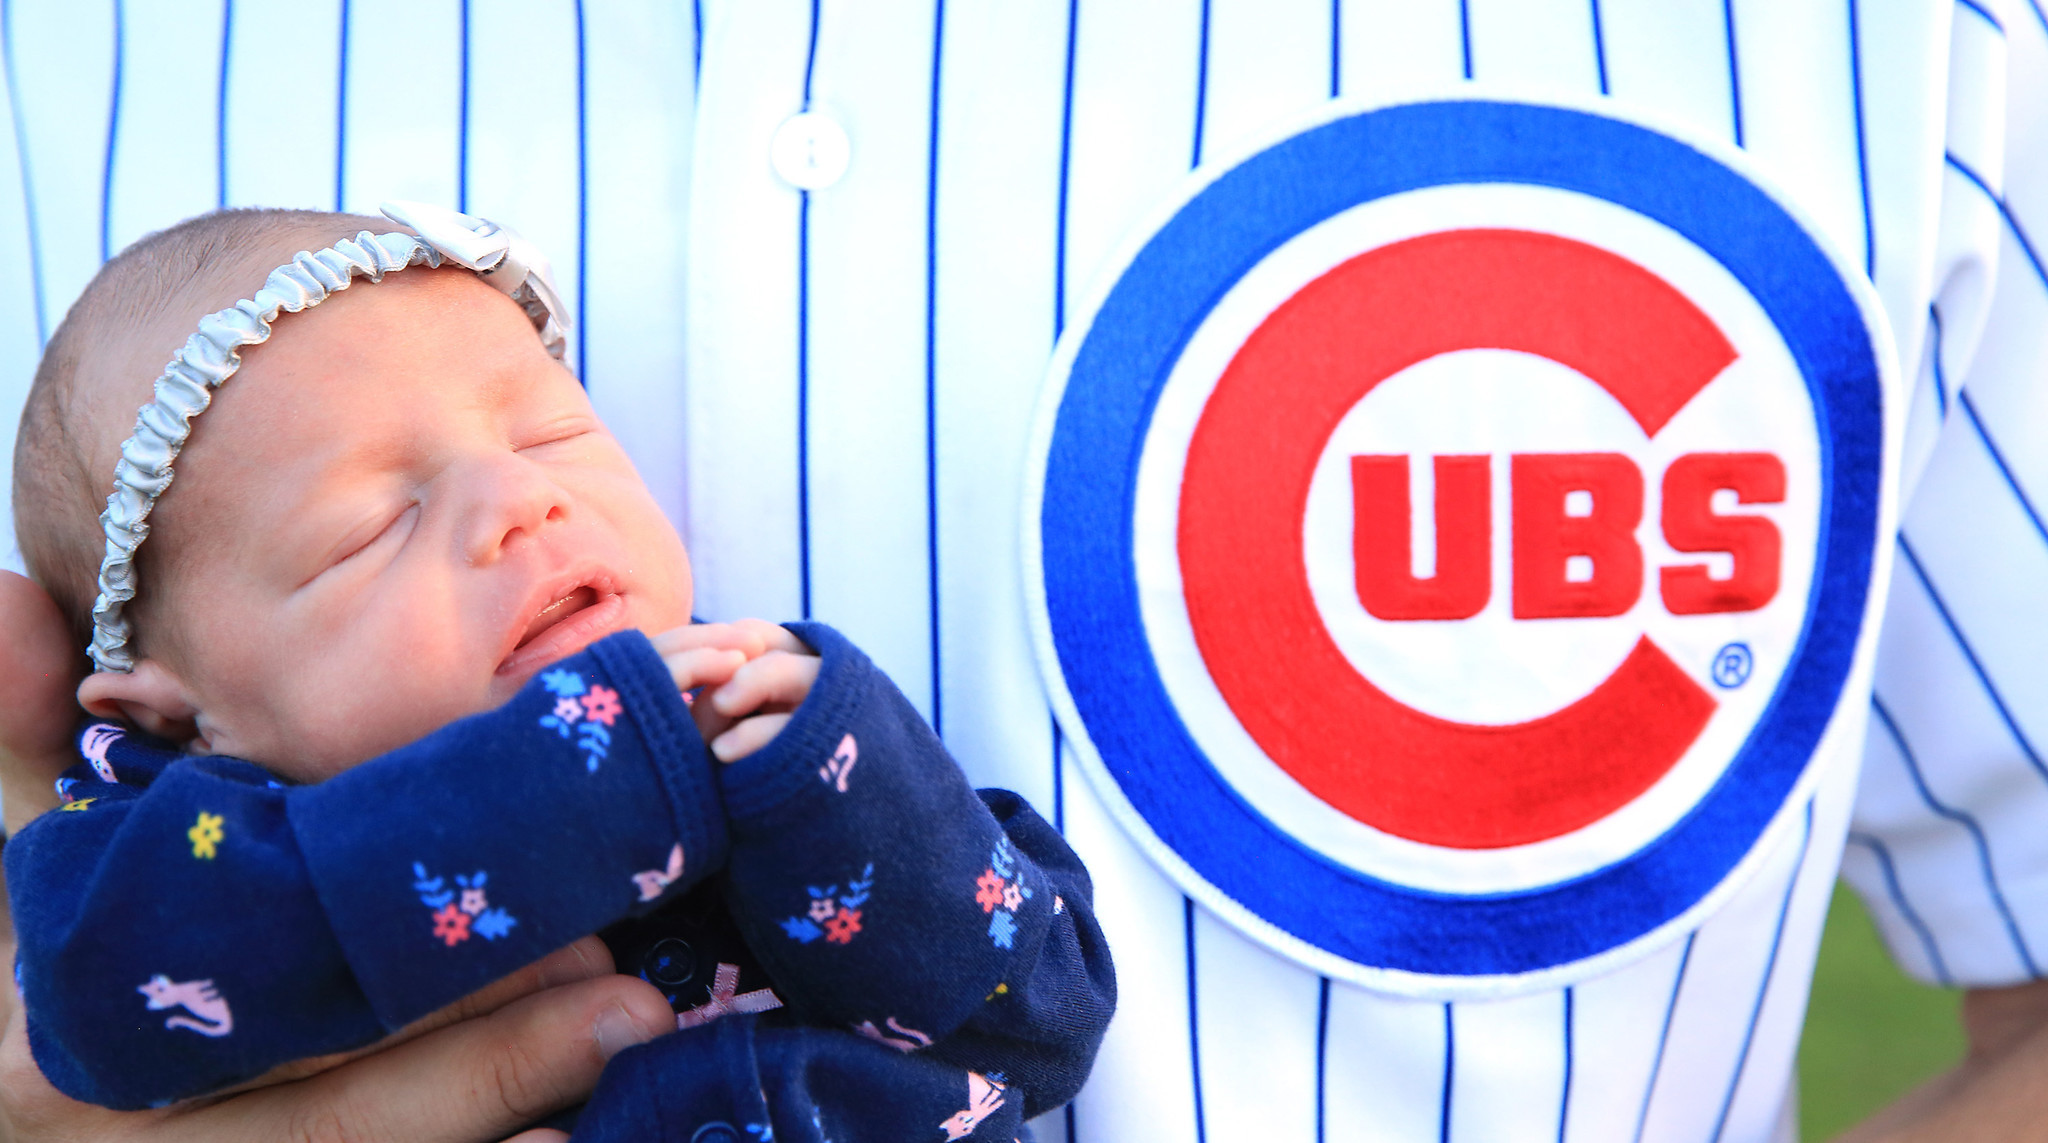 0547288fdcc A Cubs World Series baby boom  Some parents and hospitals think so - Chicago  Tribune